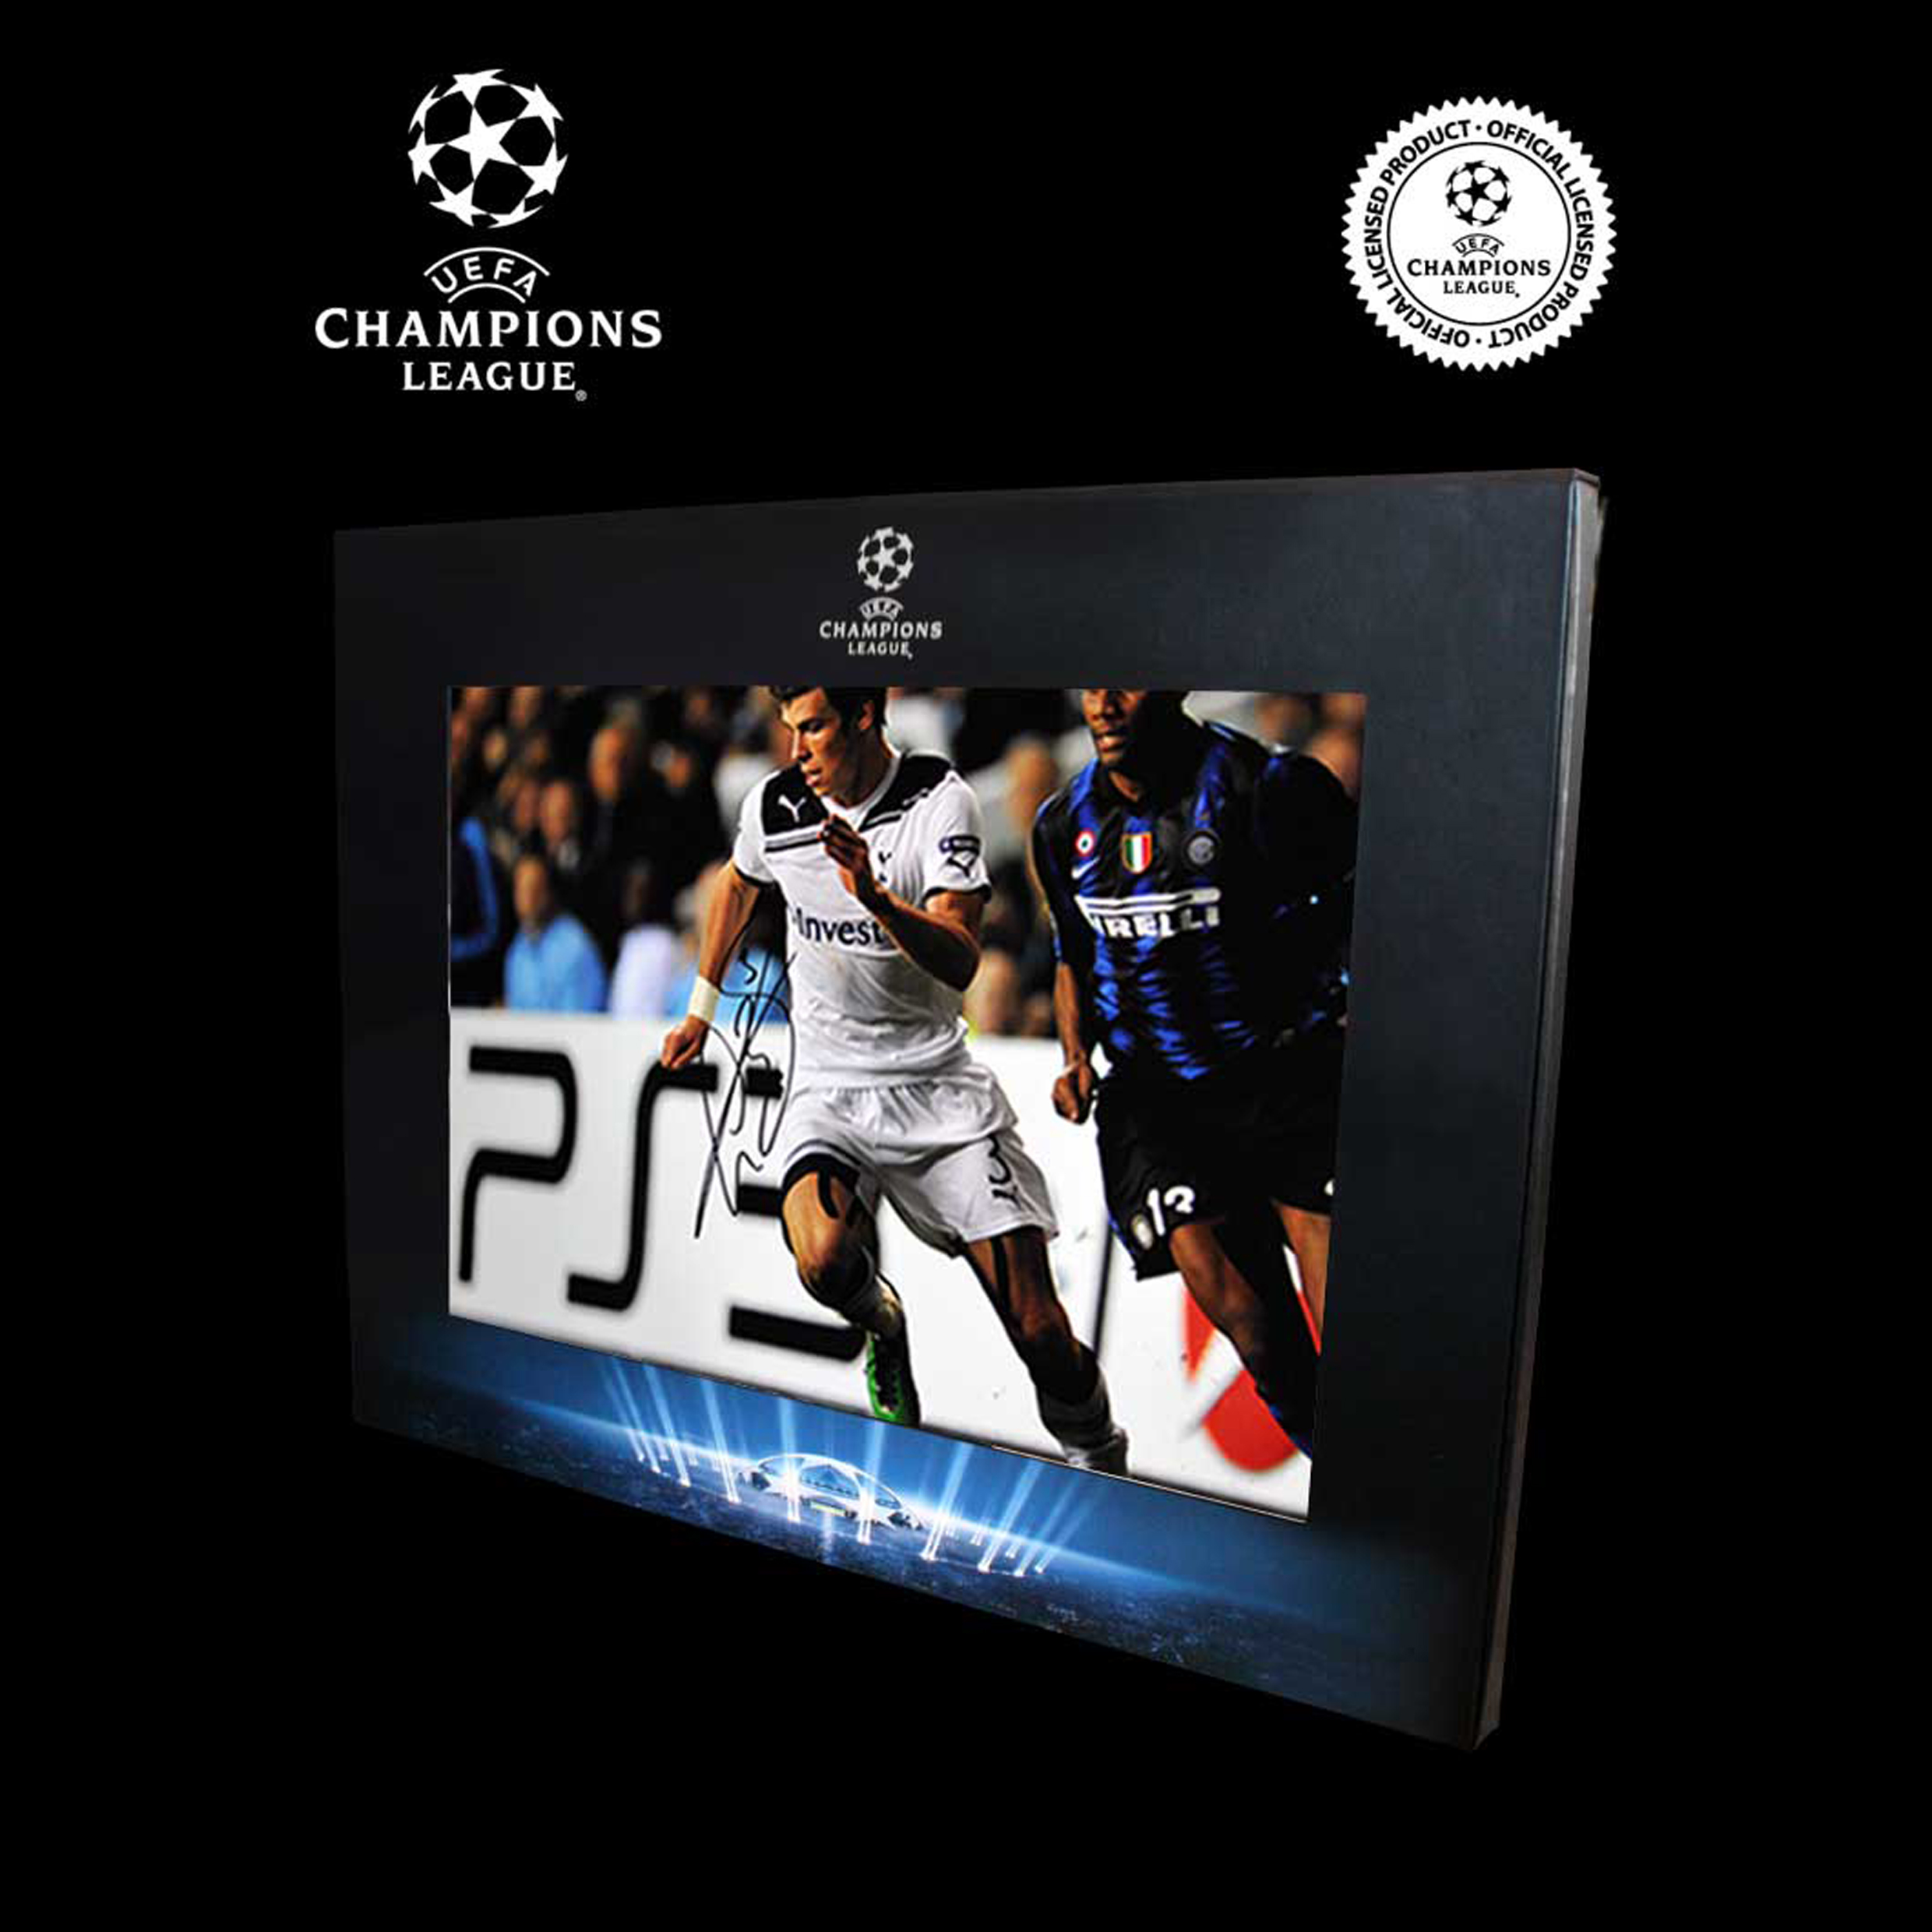 UEFA Champions League Gareth Bale Signed Photo in Deluxe Packaging: Bale v Inter Milan